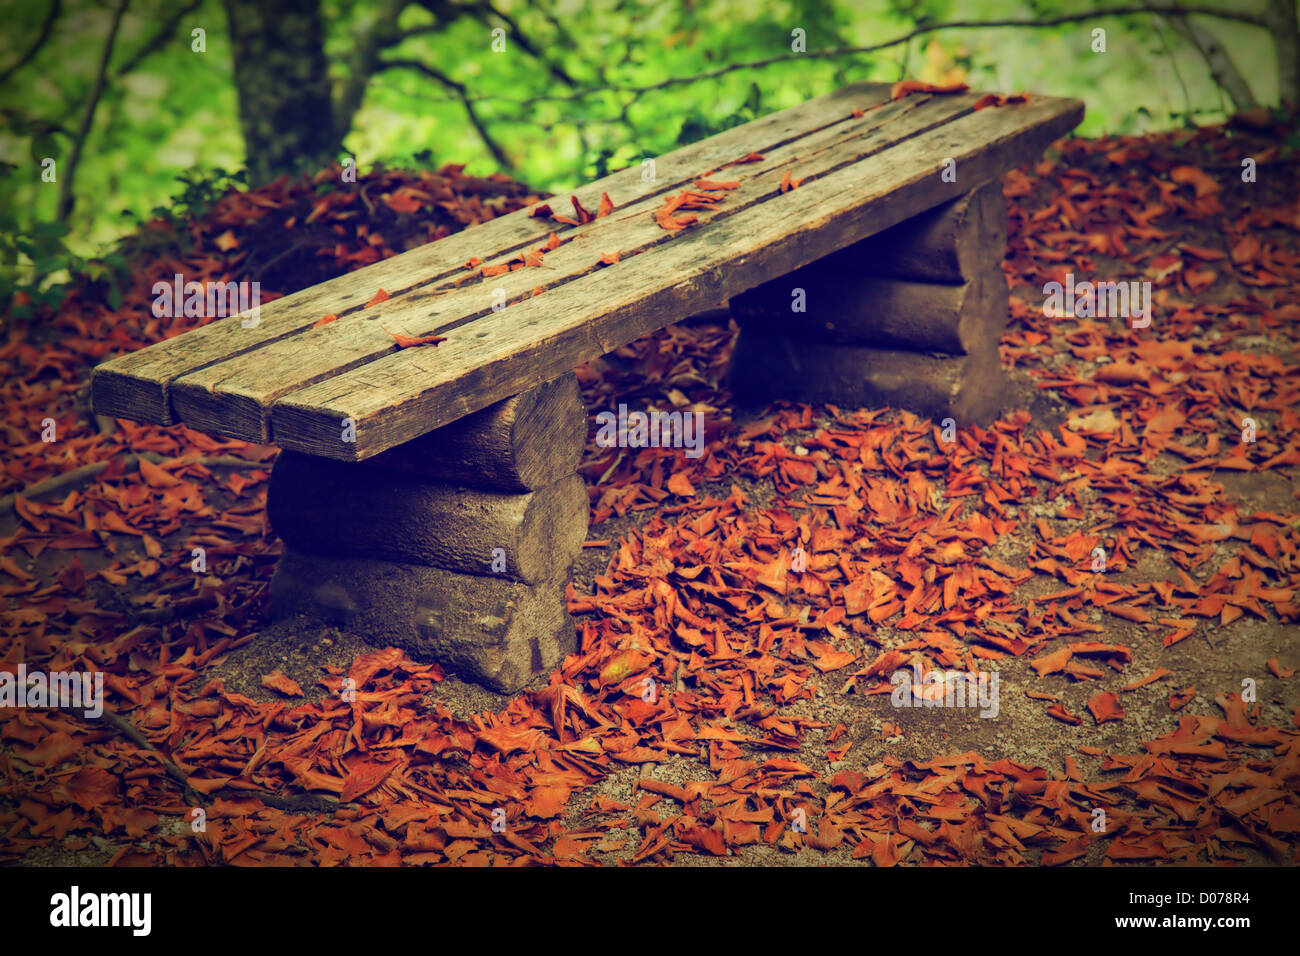 Old bench with autumn leaves, in a fall forest. - Stock Image